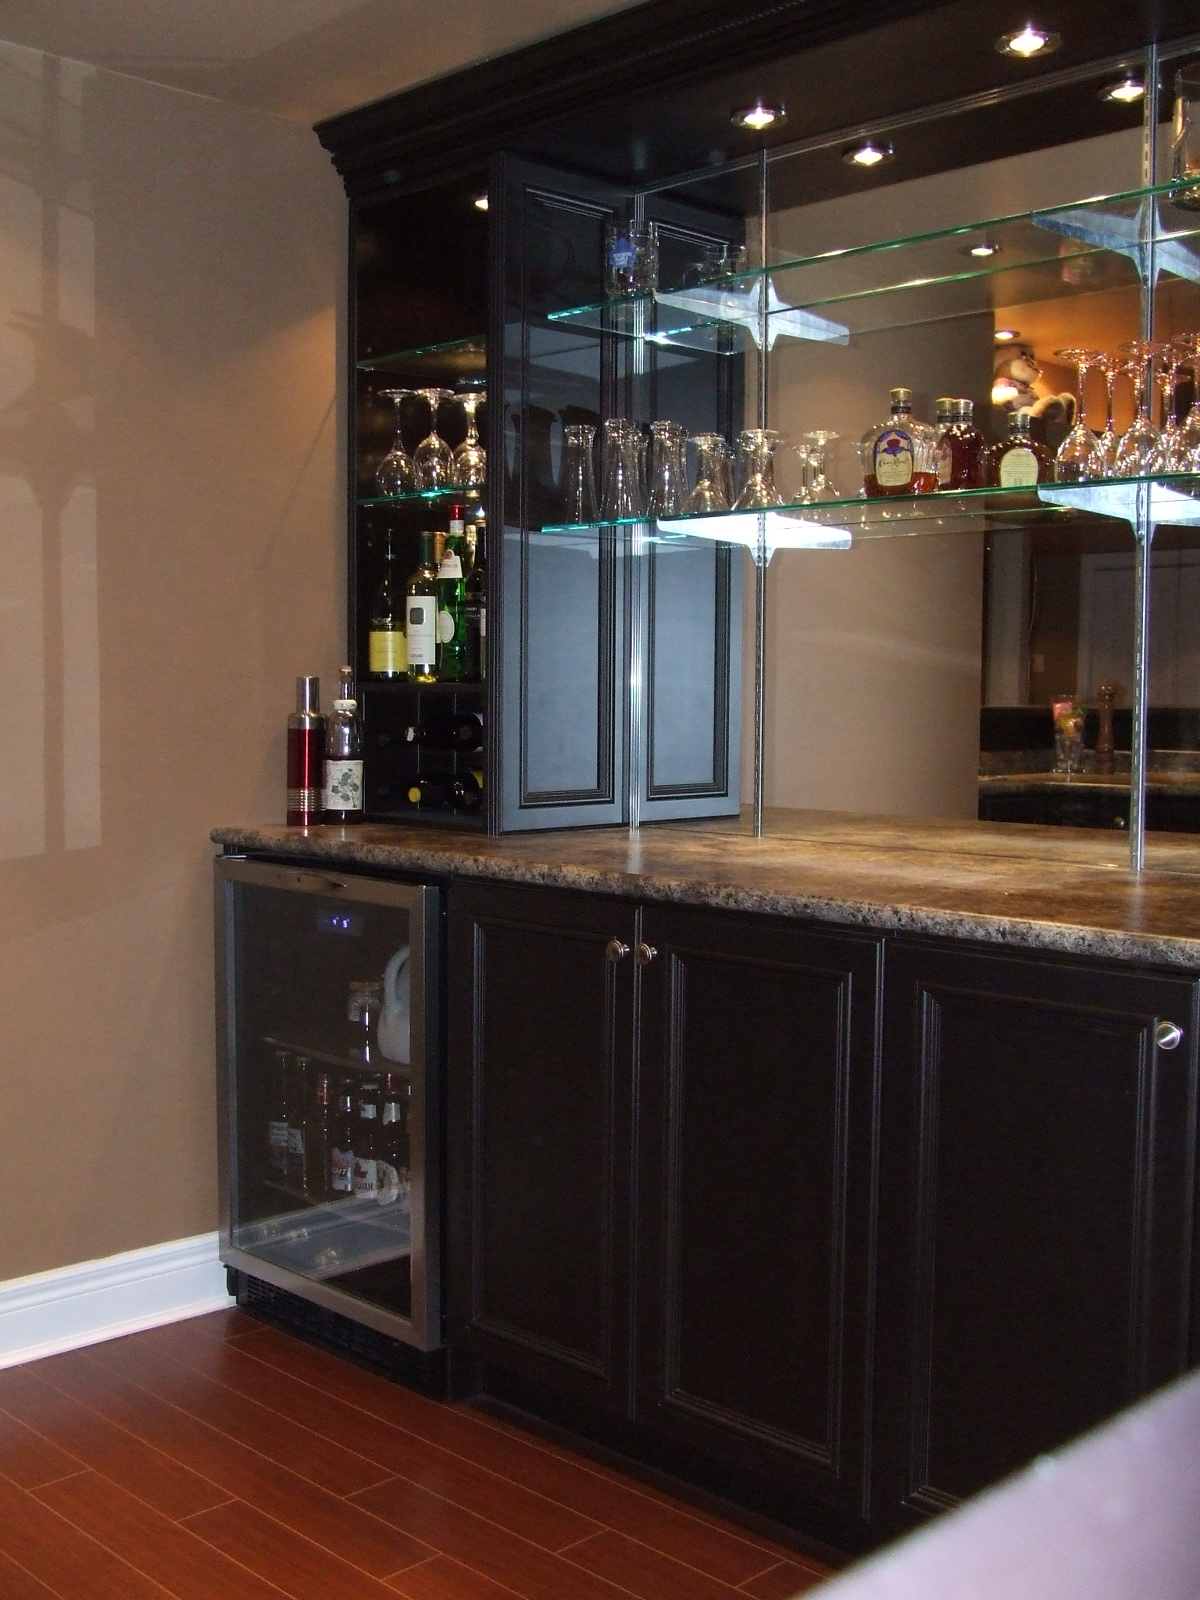 The Bar Sink Amp Dishwasher We Installed In Paul S Basement